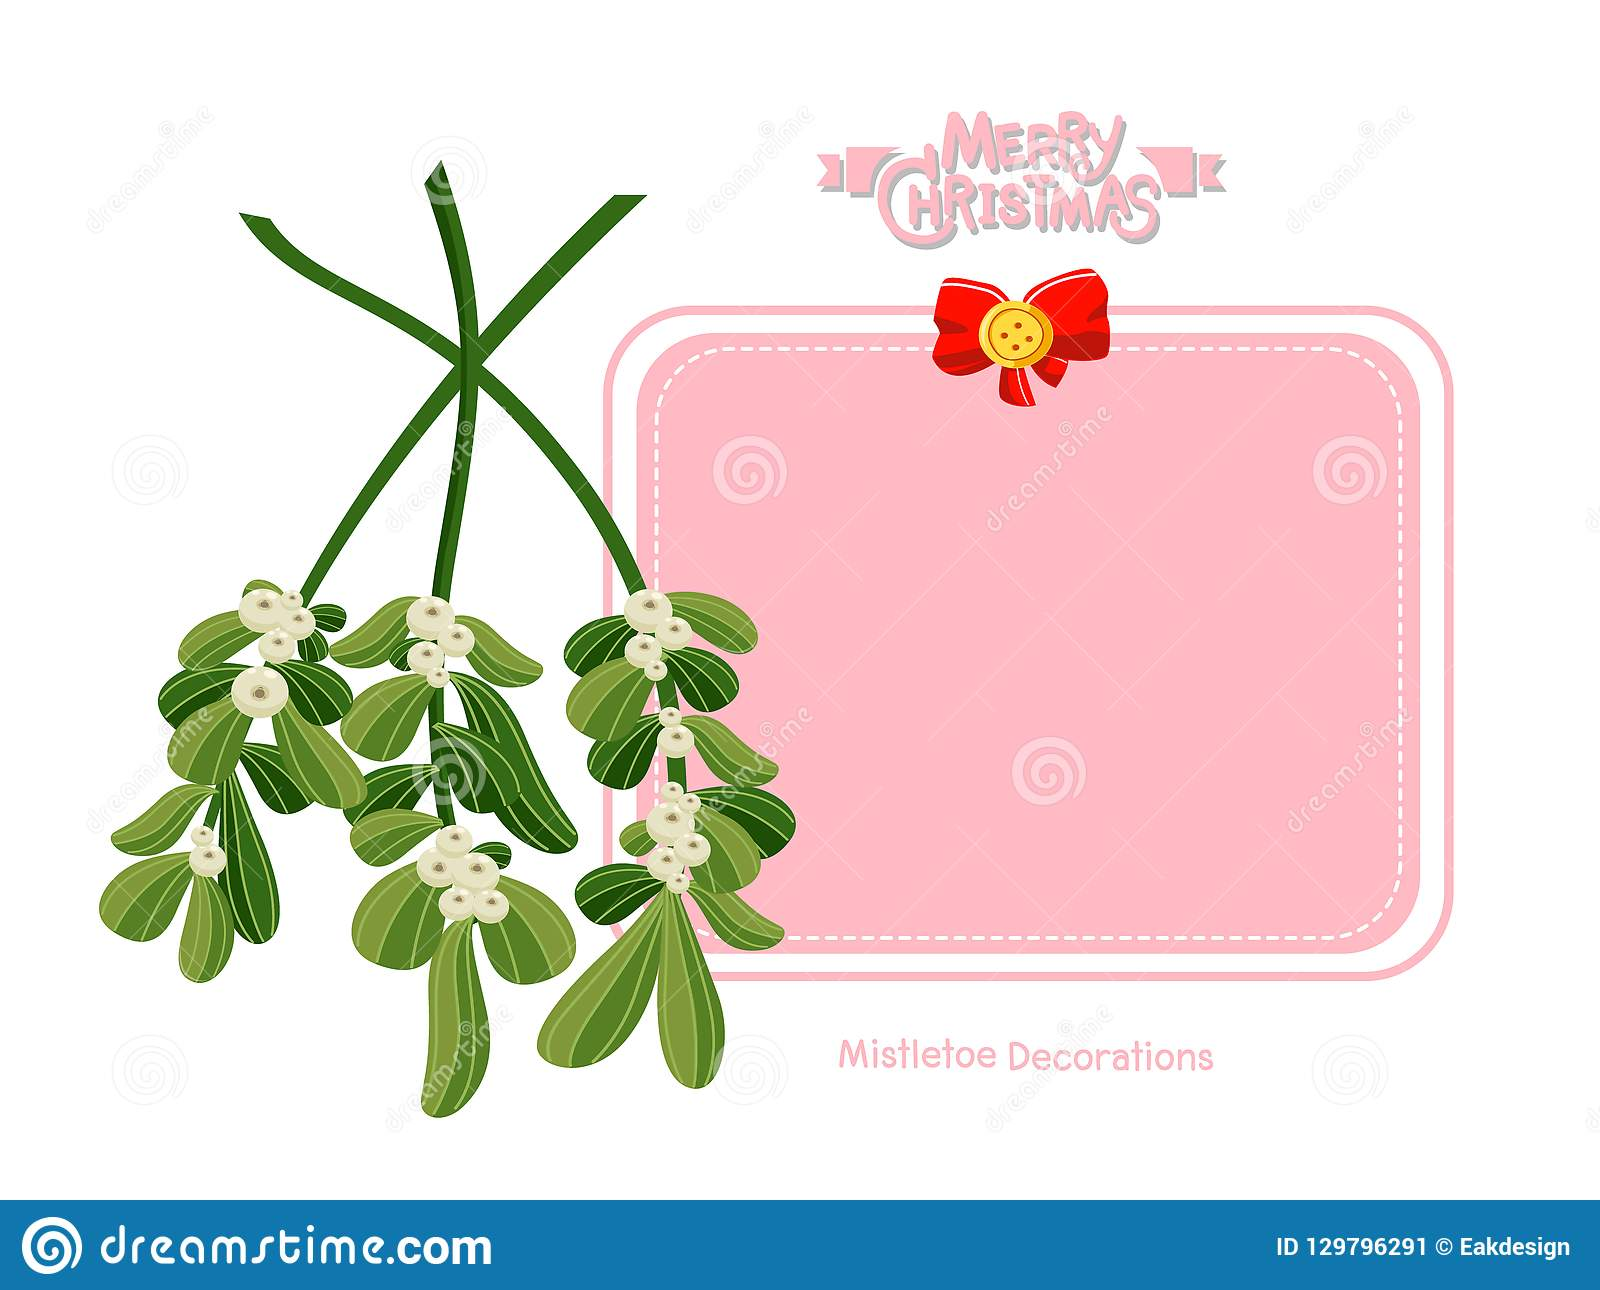 merry christmas and happy new year greeting card with mistletoe